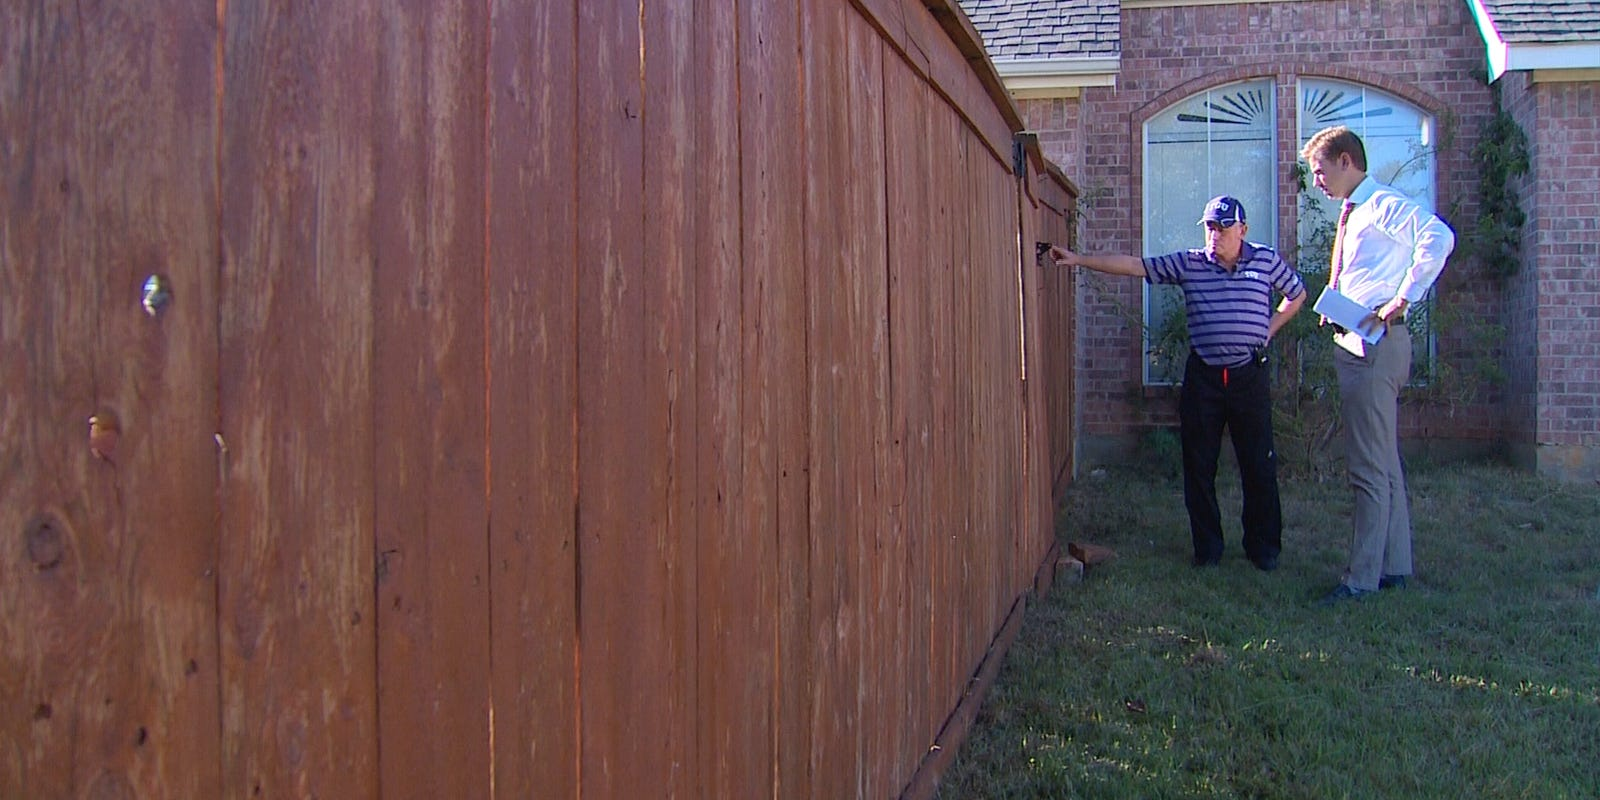 Cancer patient battles hoa over staining of fence